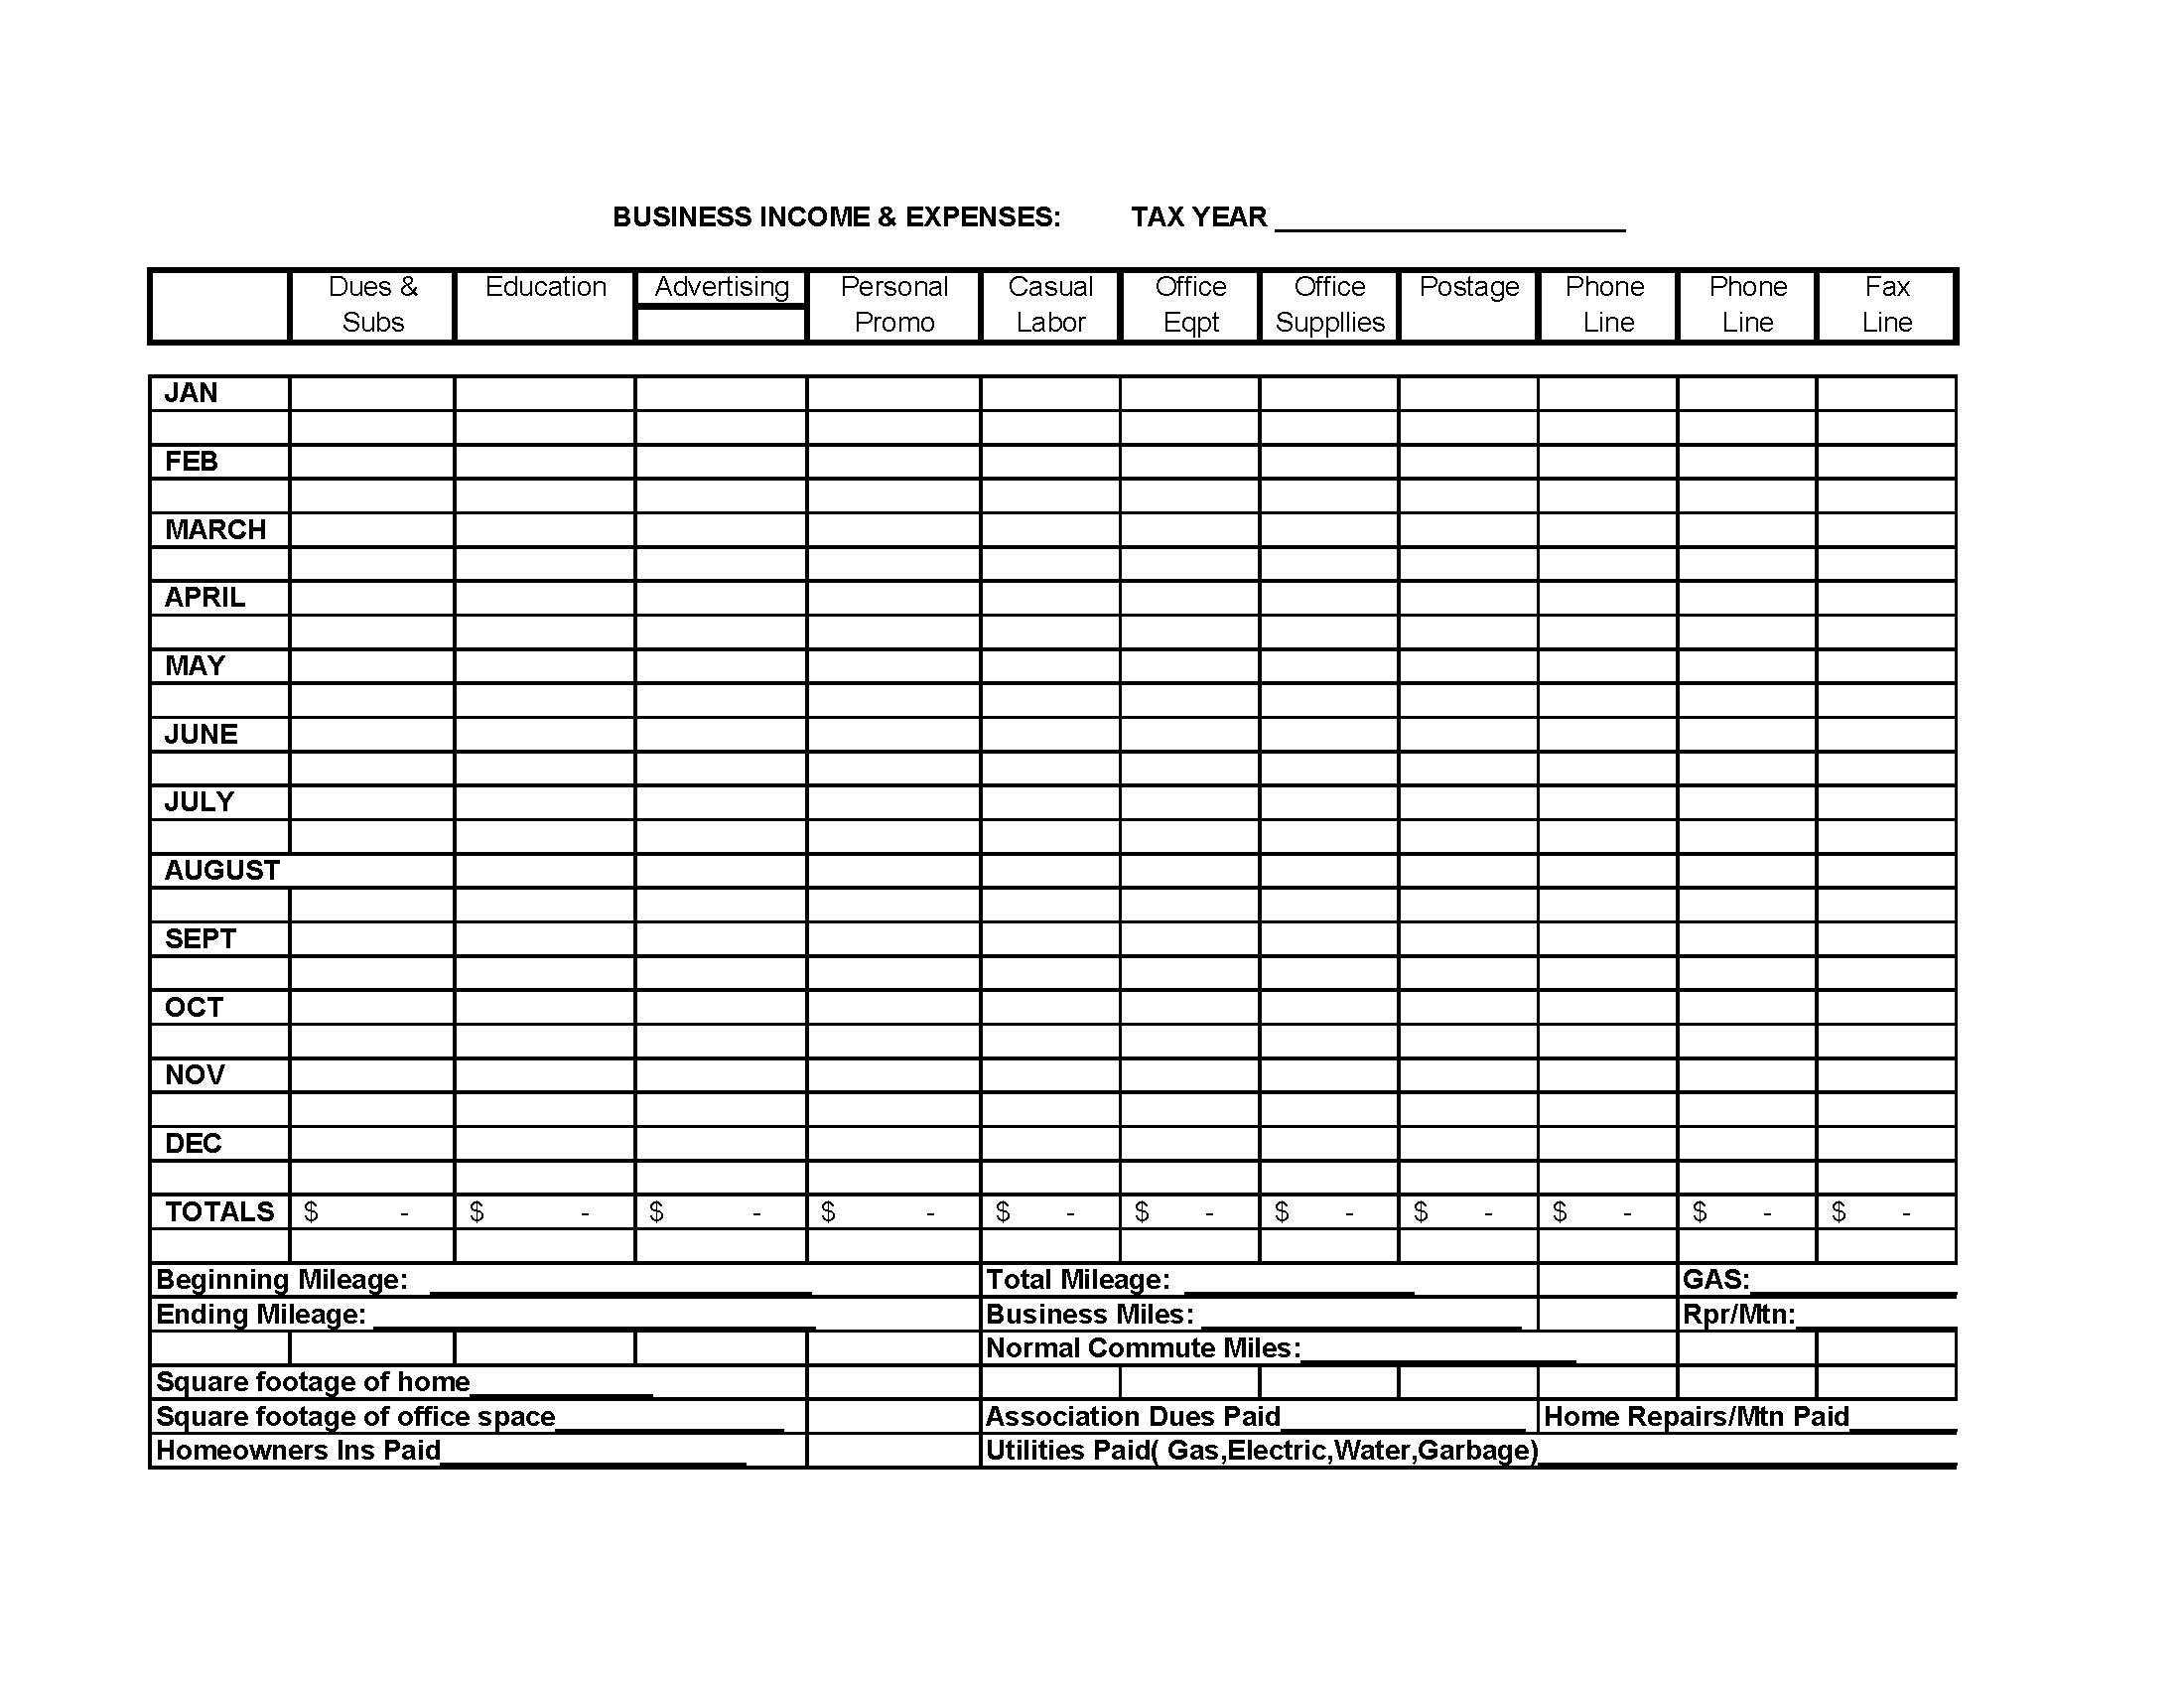 Itemized Deductions Worksheet Printable